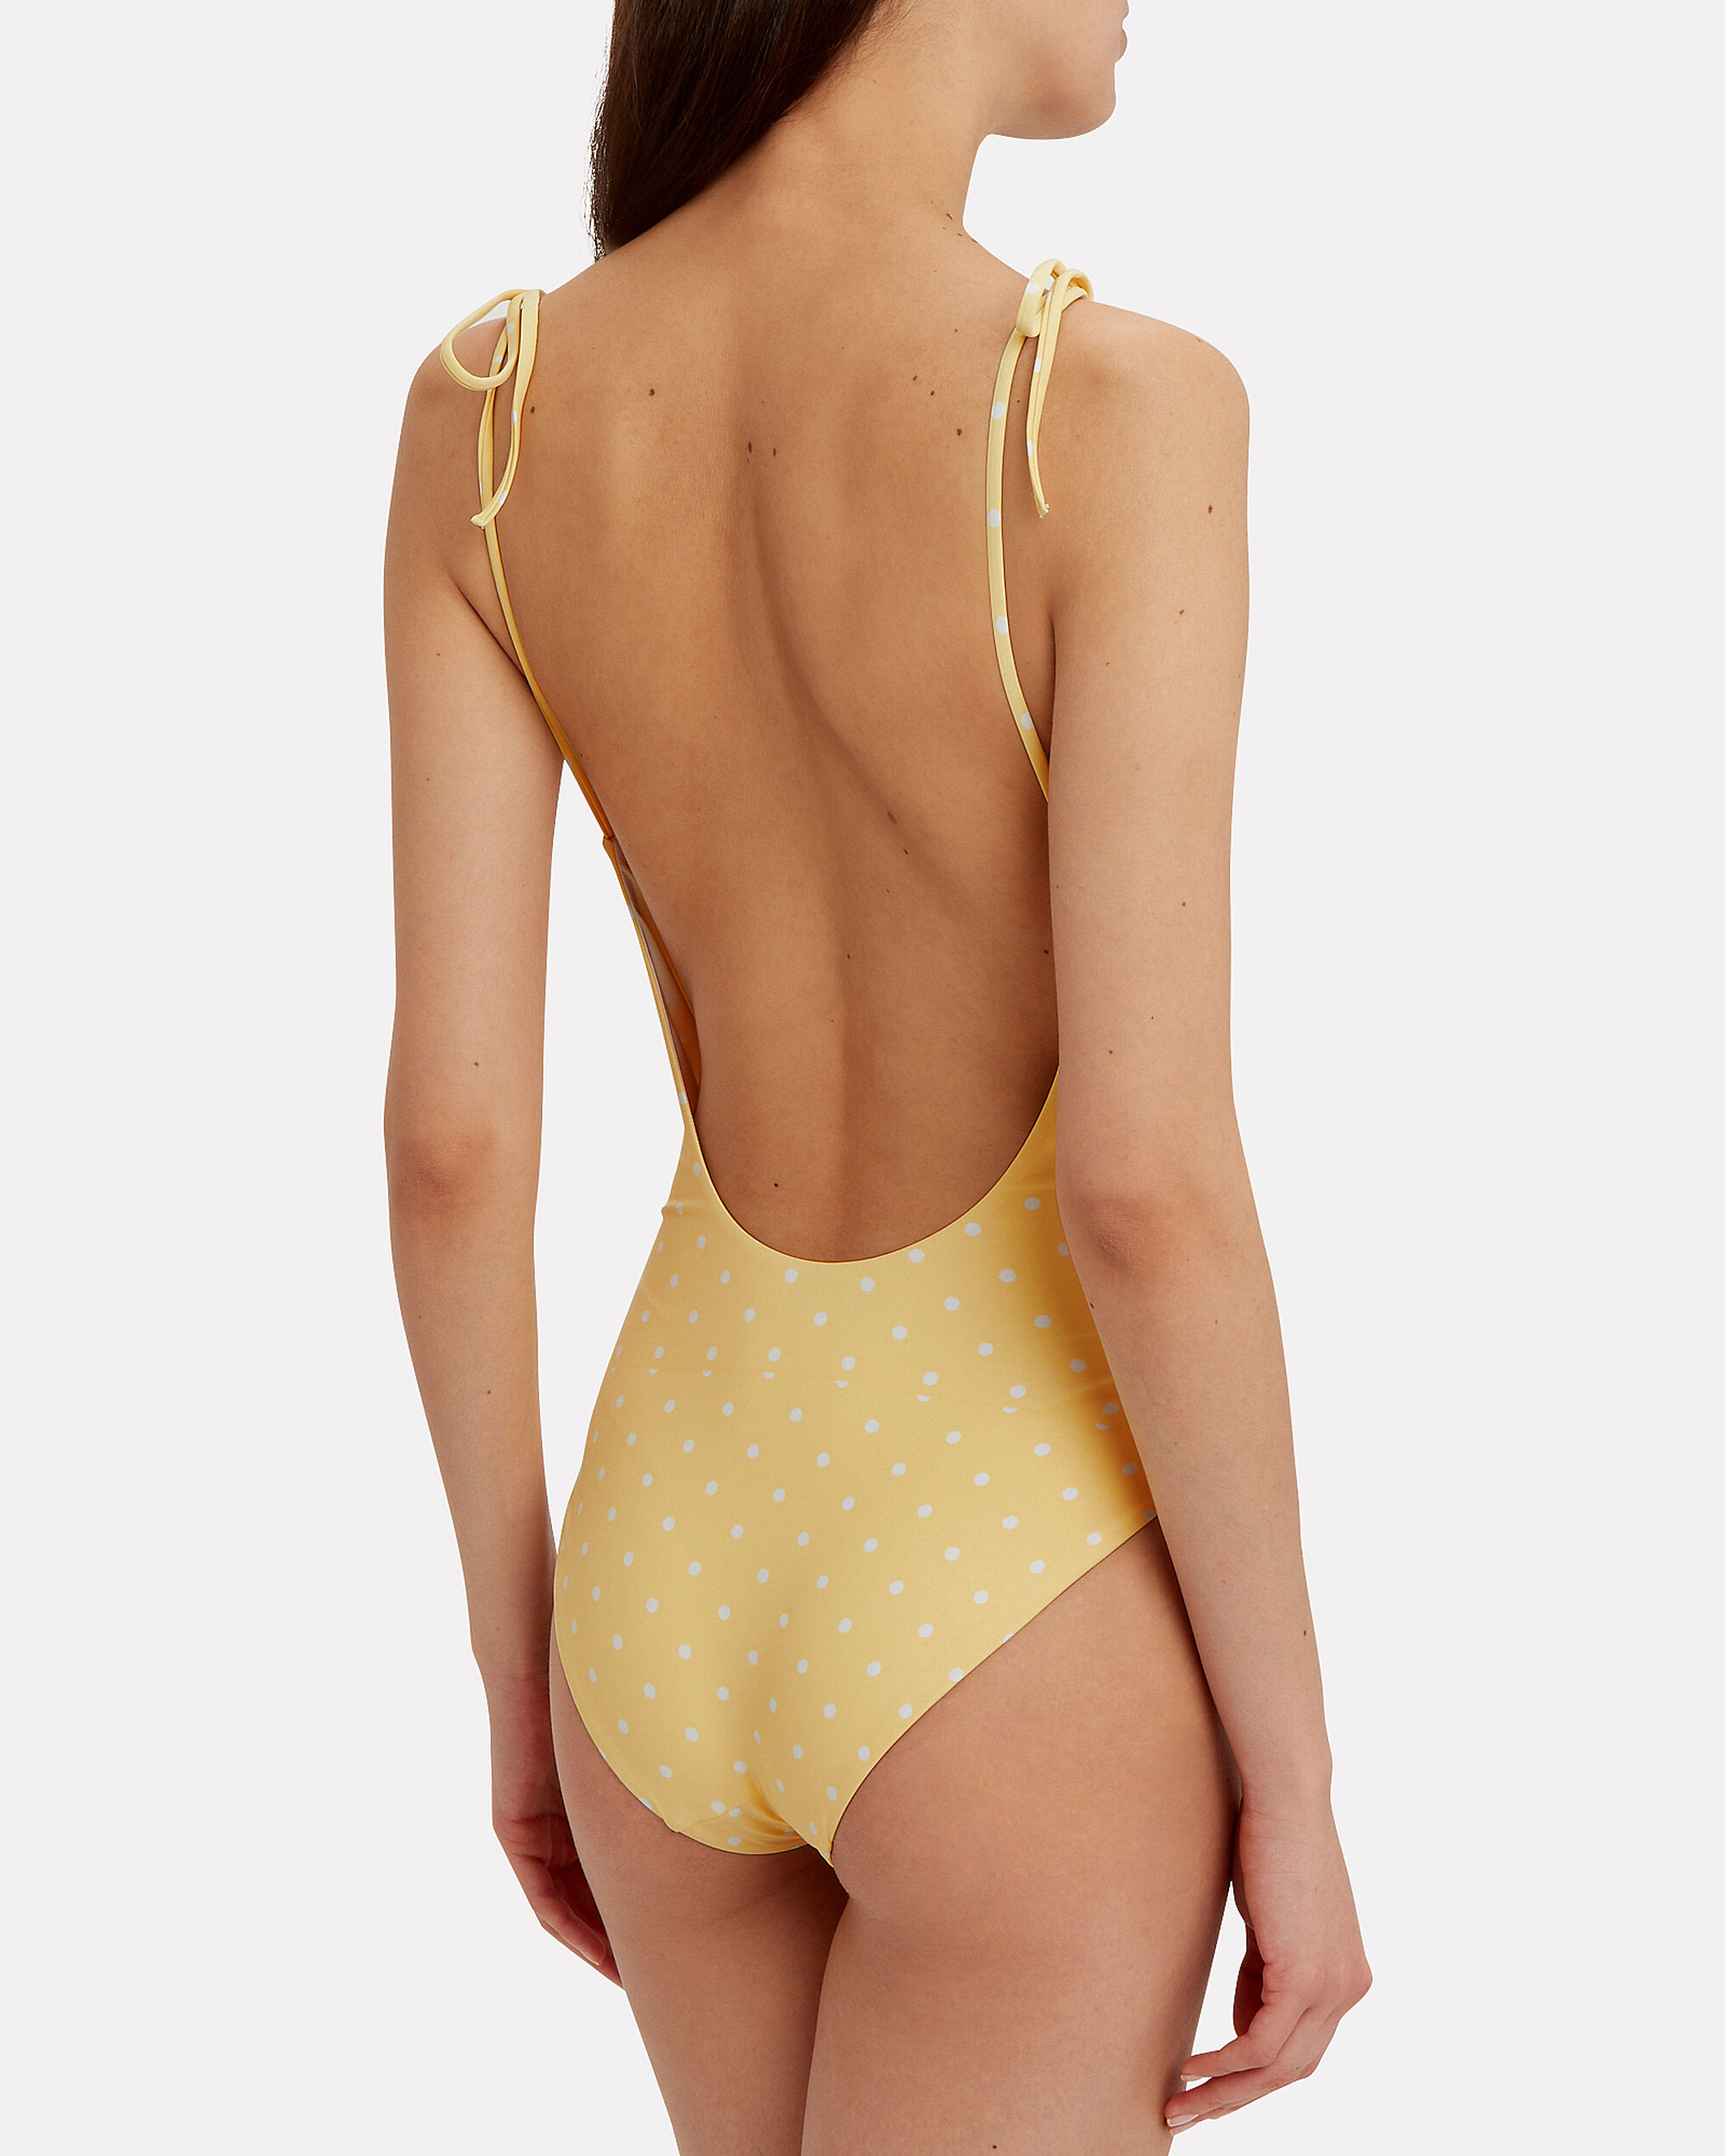 Ginny Polka Dot Tie Shoulder One Piece Swimsuit, YELLOW/WHITE, hi-res